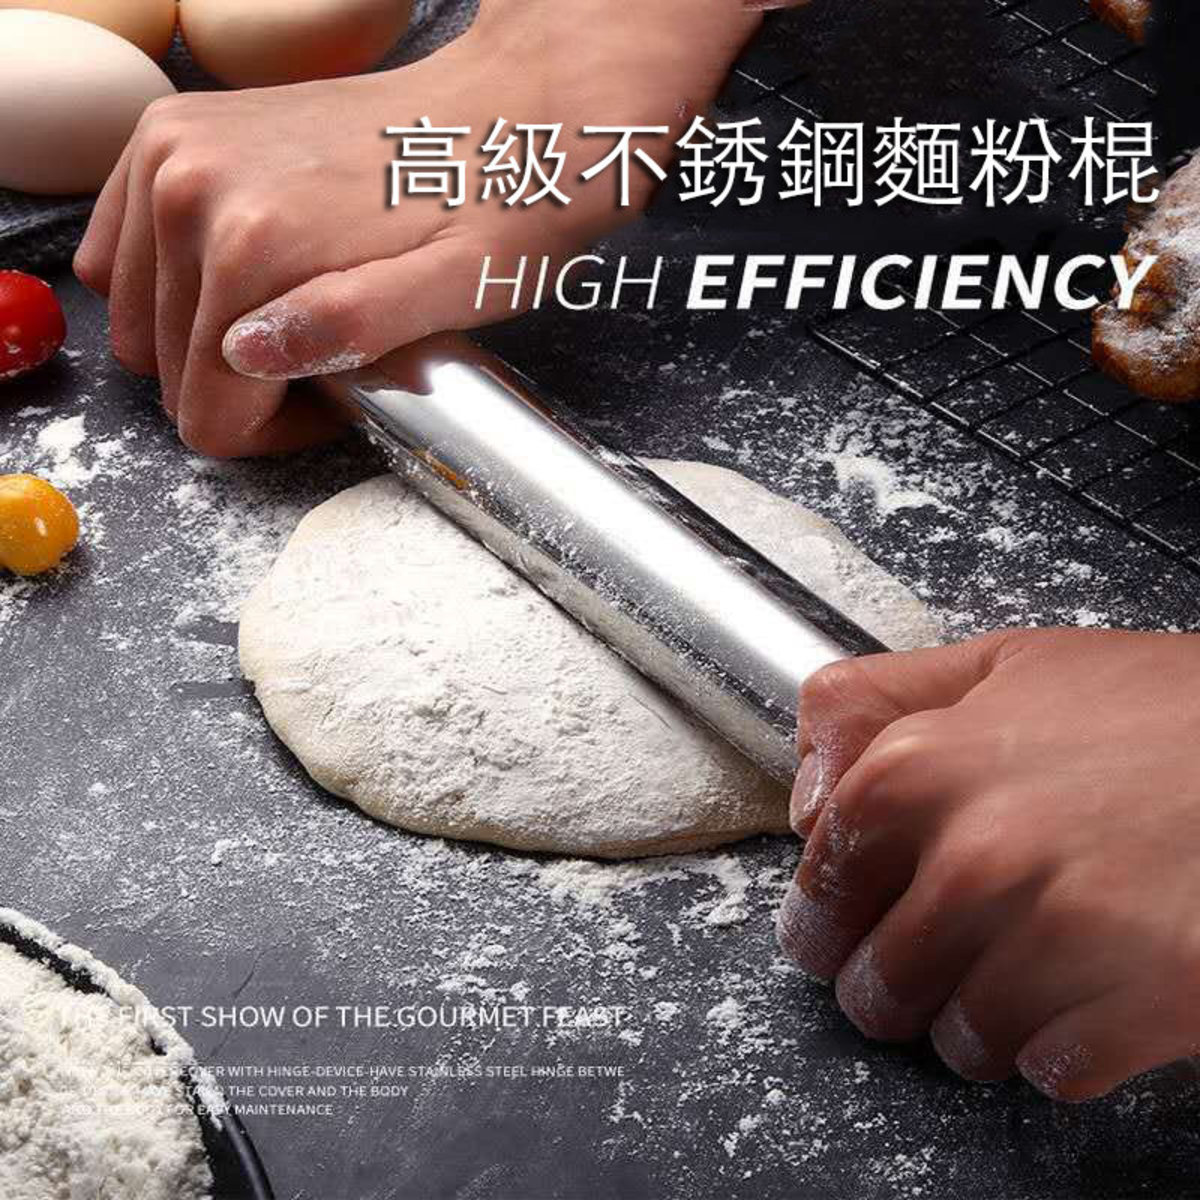 Stainless Steel Rolling pin 【光面麵粉棍】